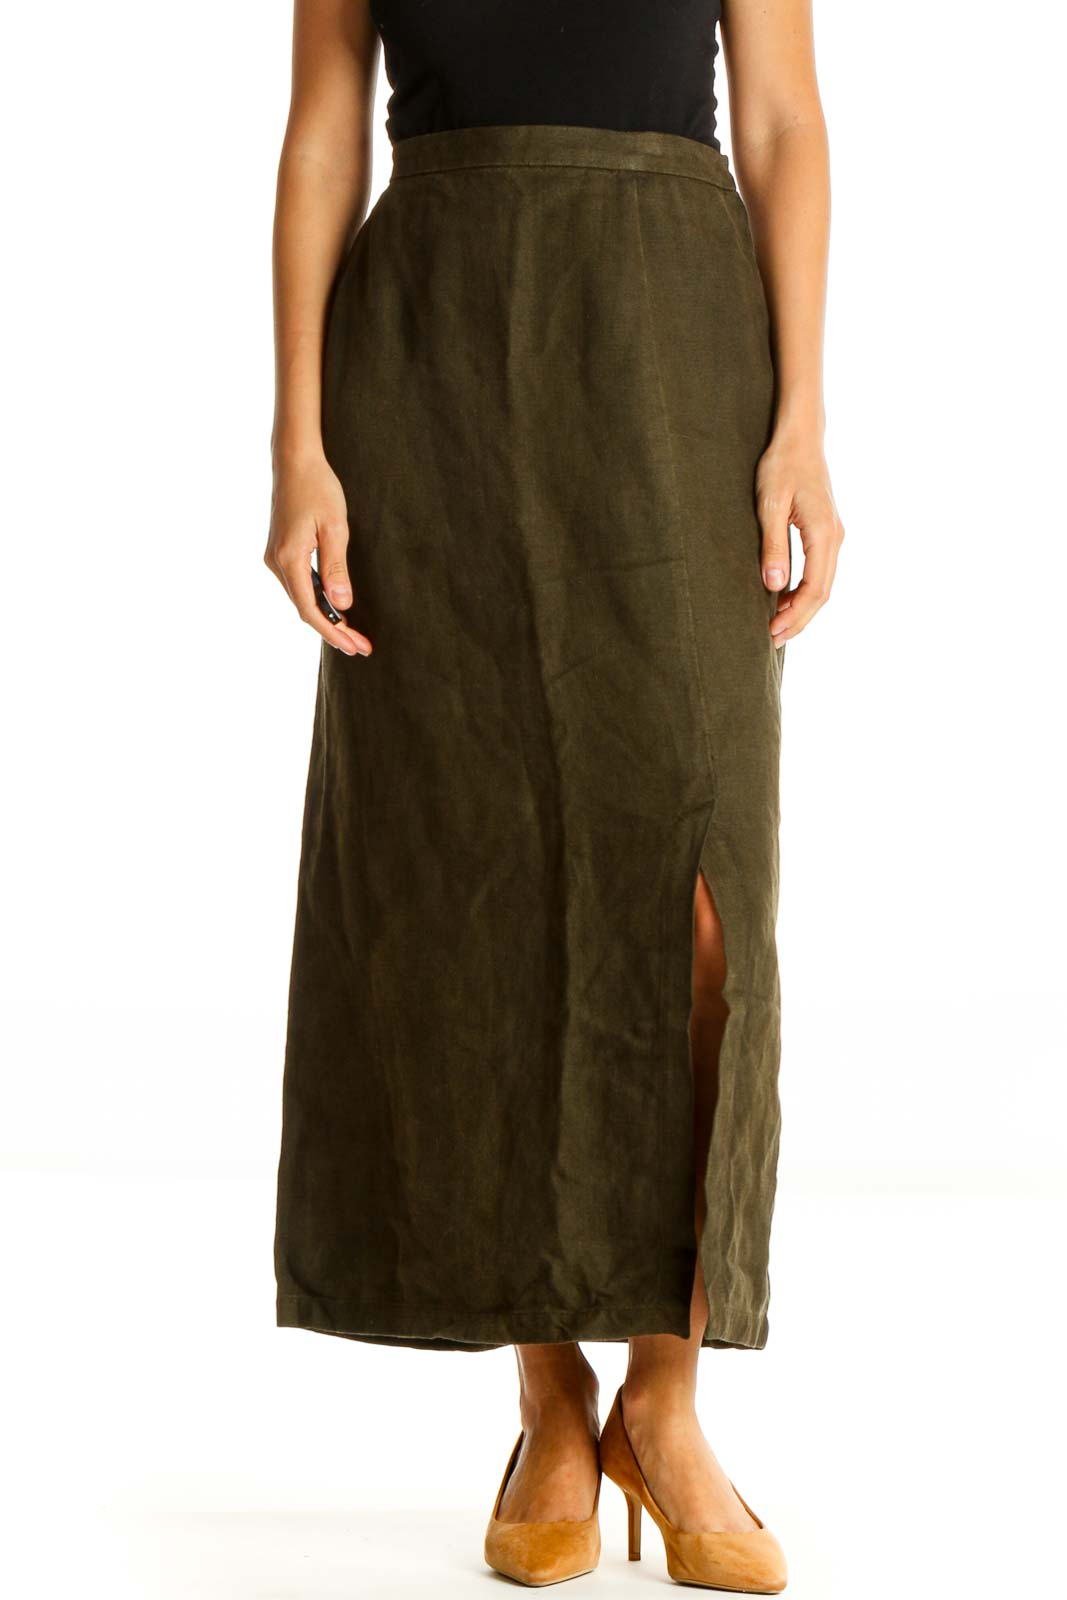 Green Casual A-Line Skirt Front